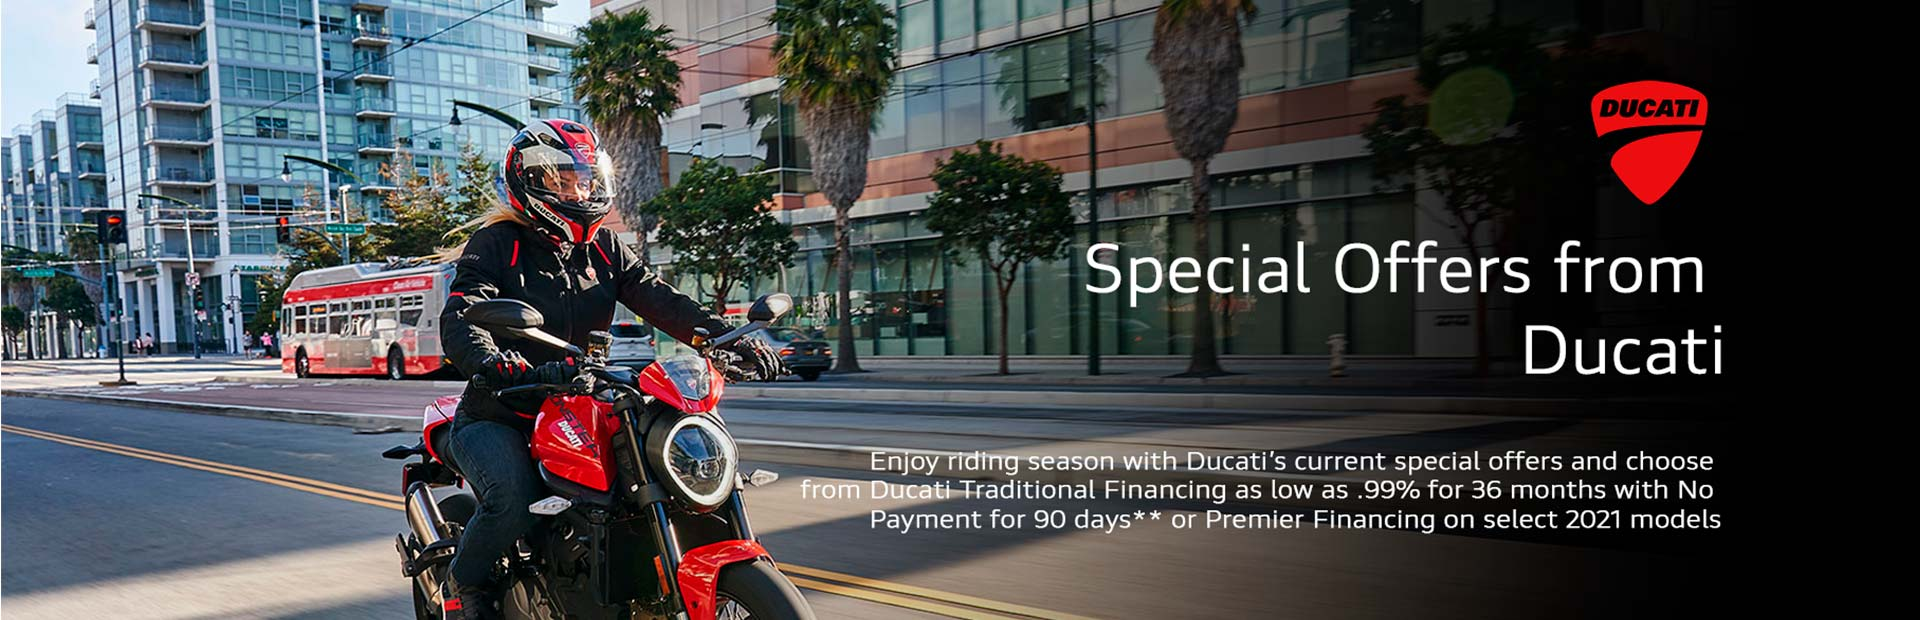 Special Offers from Ducati at Aces Motorcycles - Fort Collins